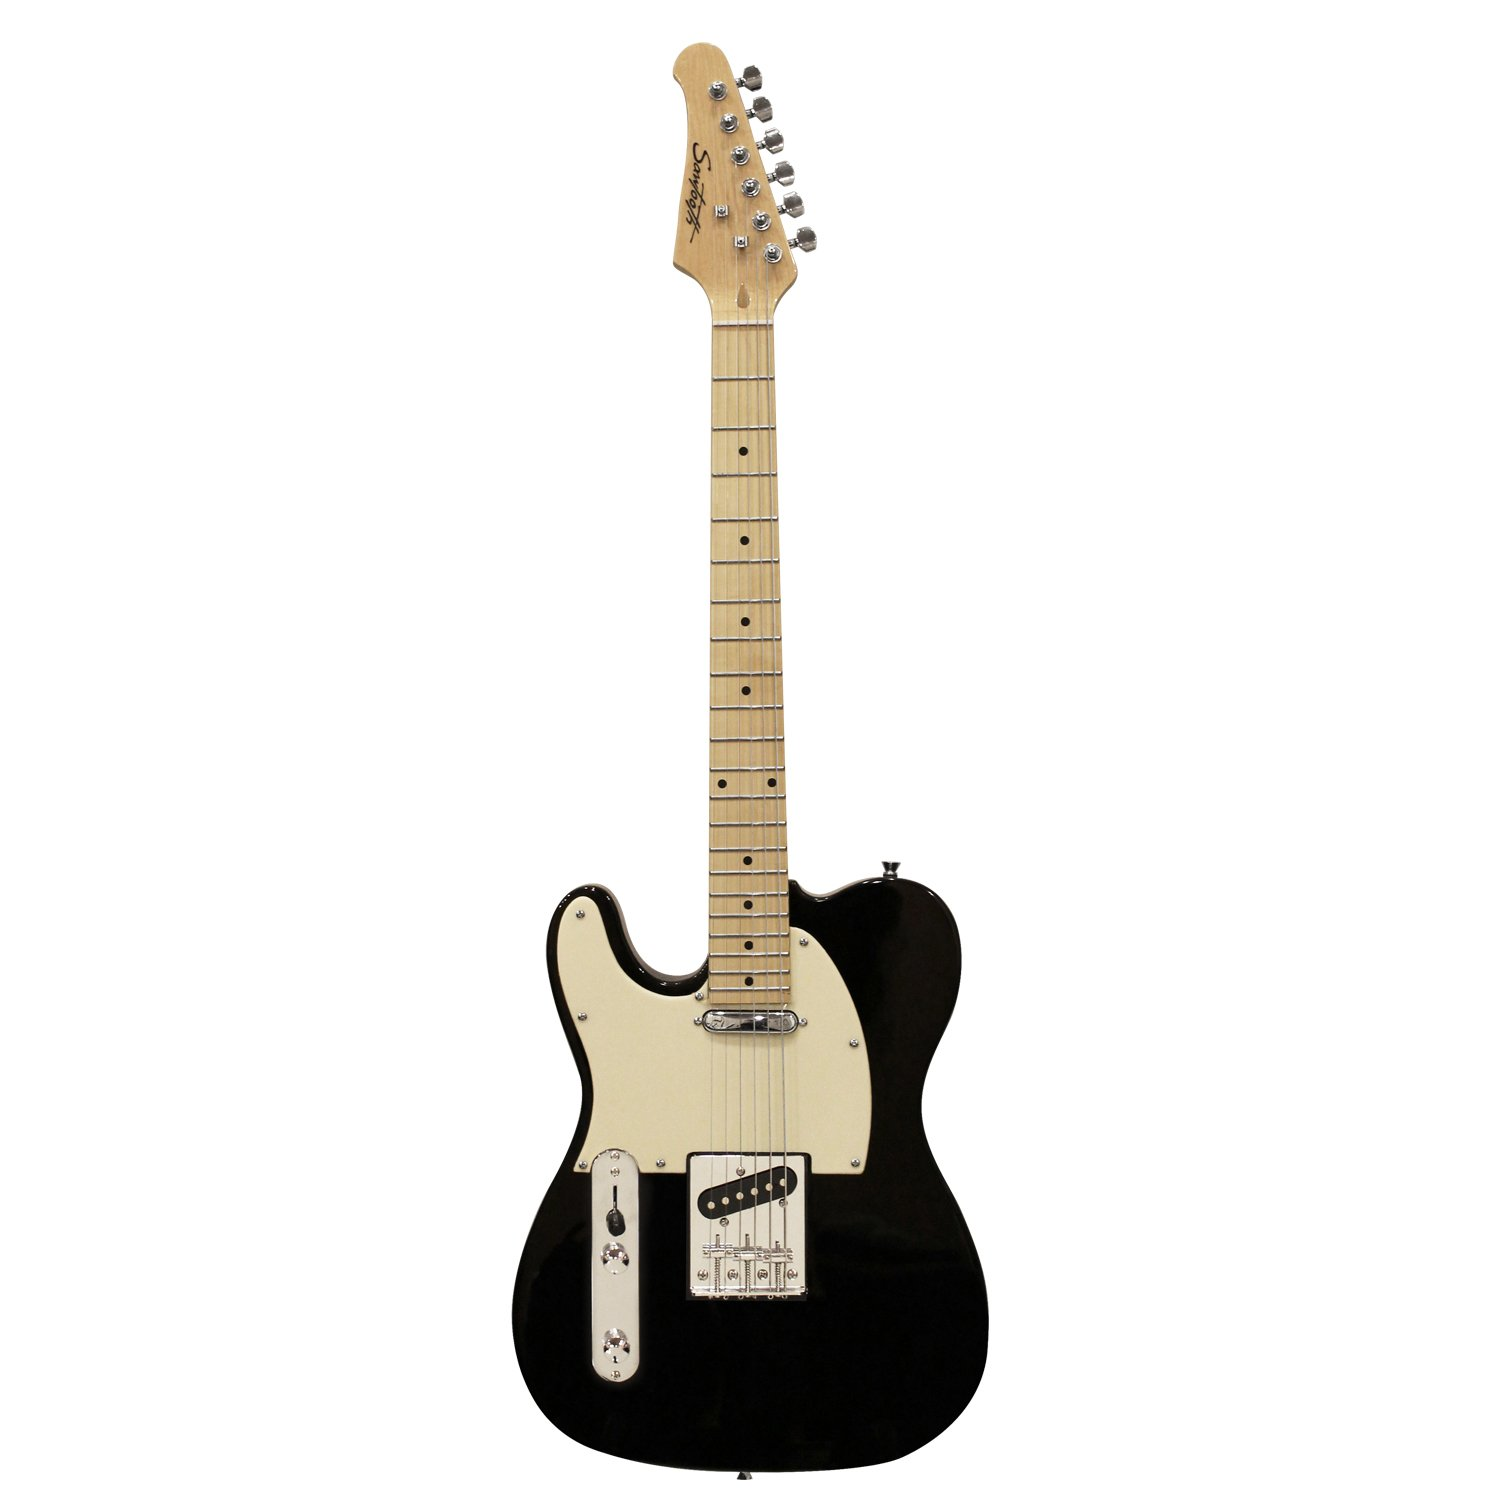 Sawtooth ET Series Left-Handed Electric Guitar, Black w/Aged White Pickguard ST-ET-LH-BKW